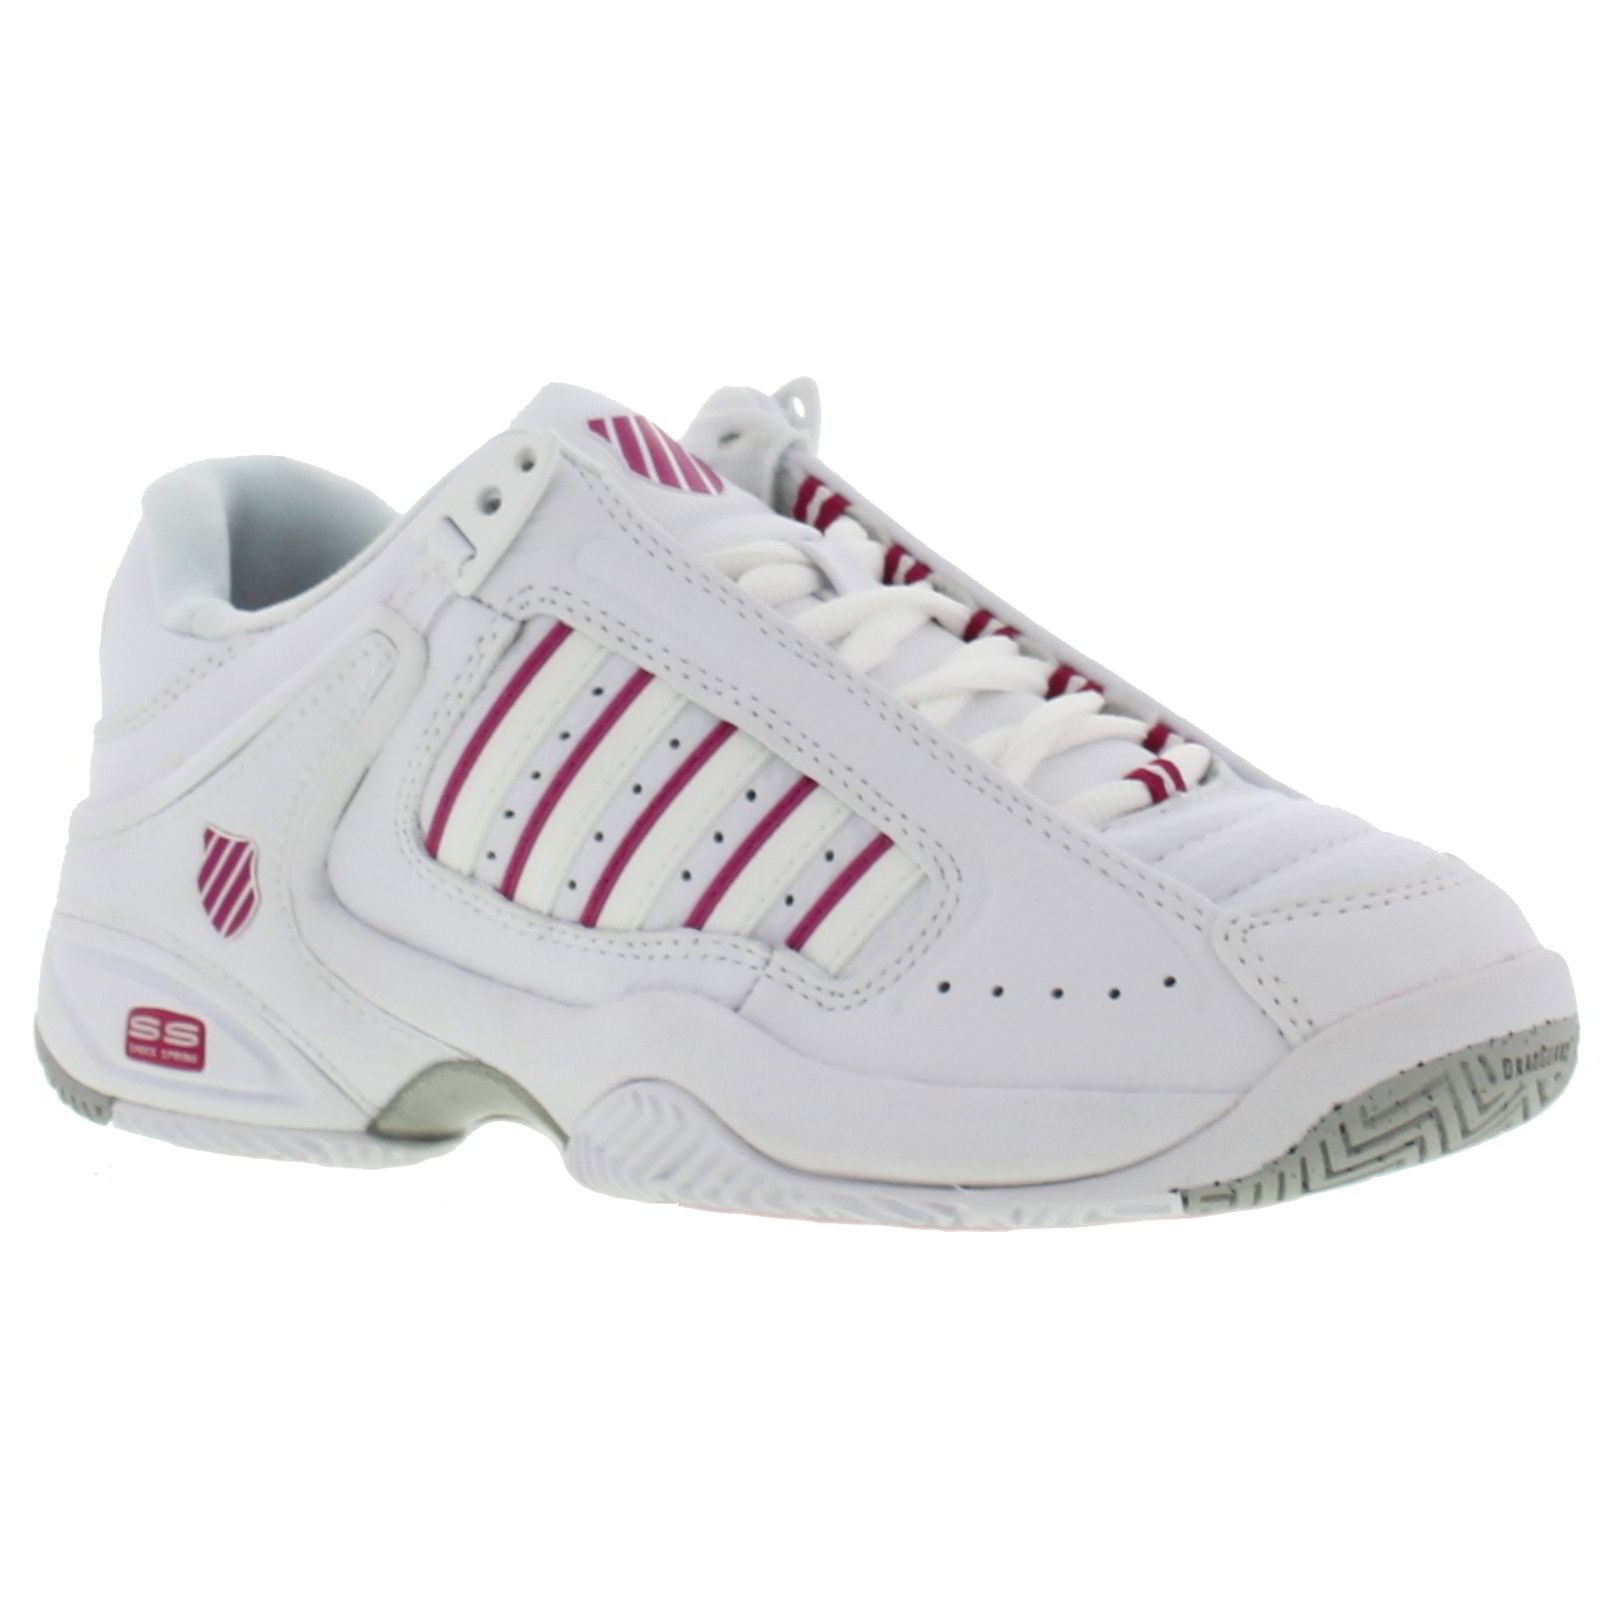 K Swiss Defier Womens Tennis Shoes - White Very Berry